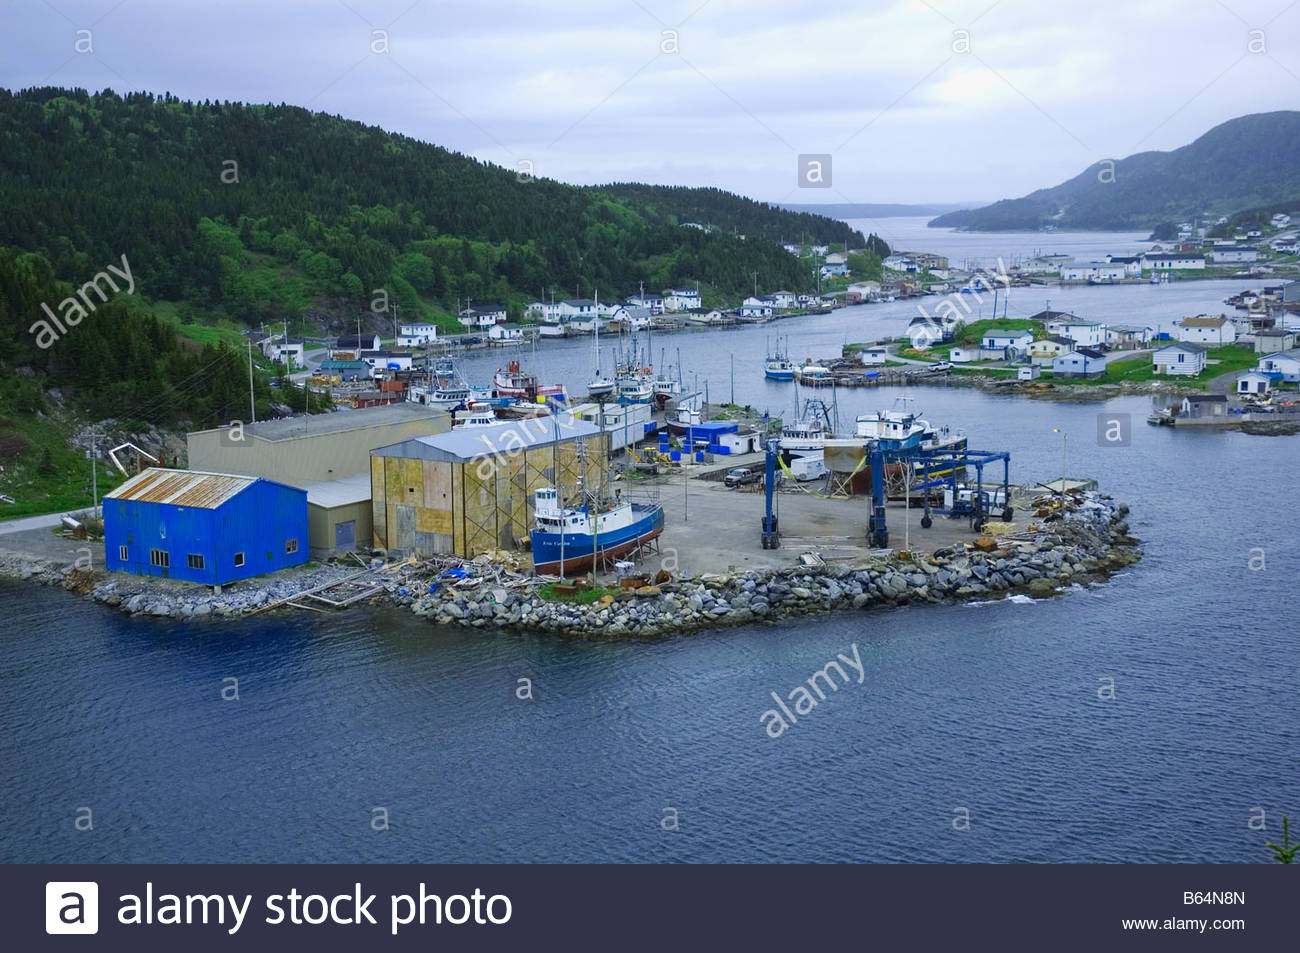 Englee and Grevigneaux Harbours Newfoundland - Stock Image